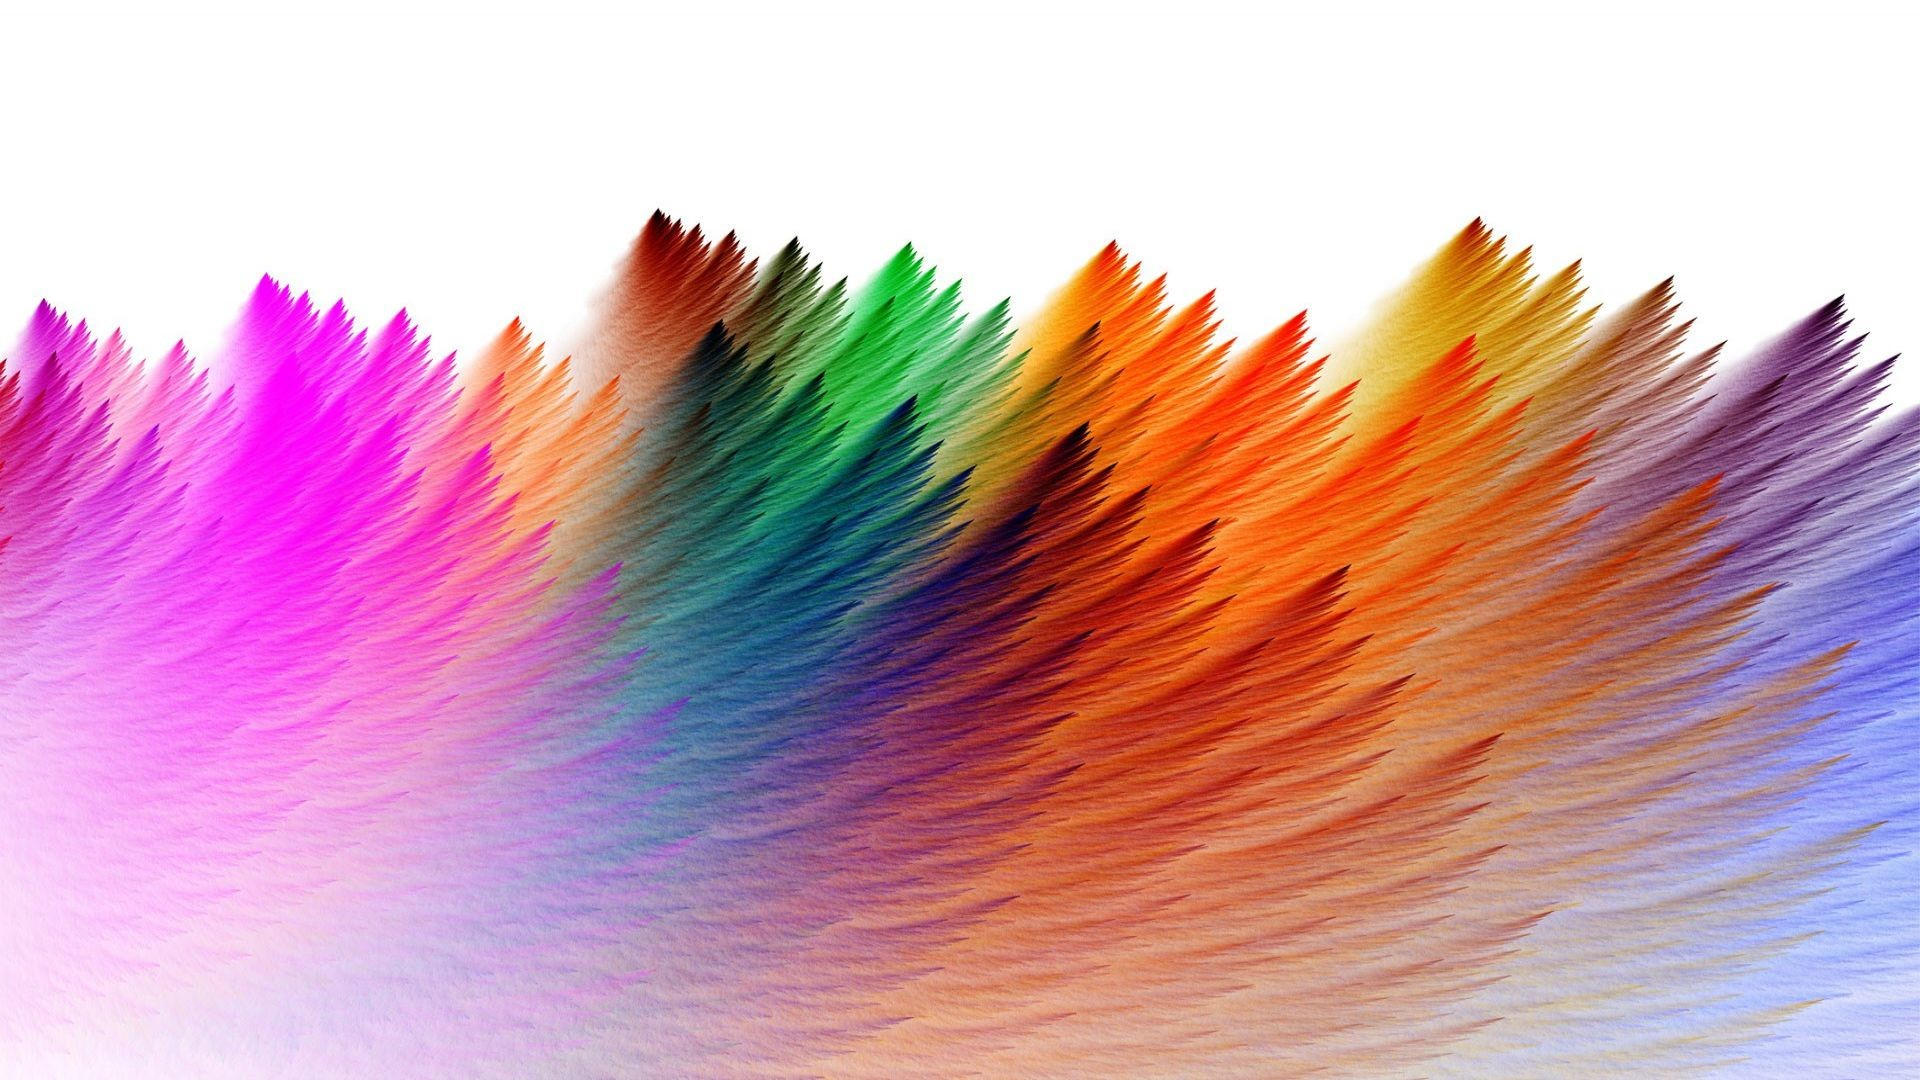 Colorful Abstract Color, art background hd wallpaper by JennyMari